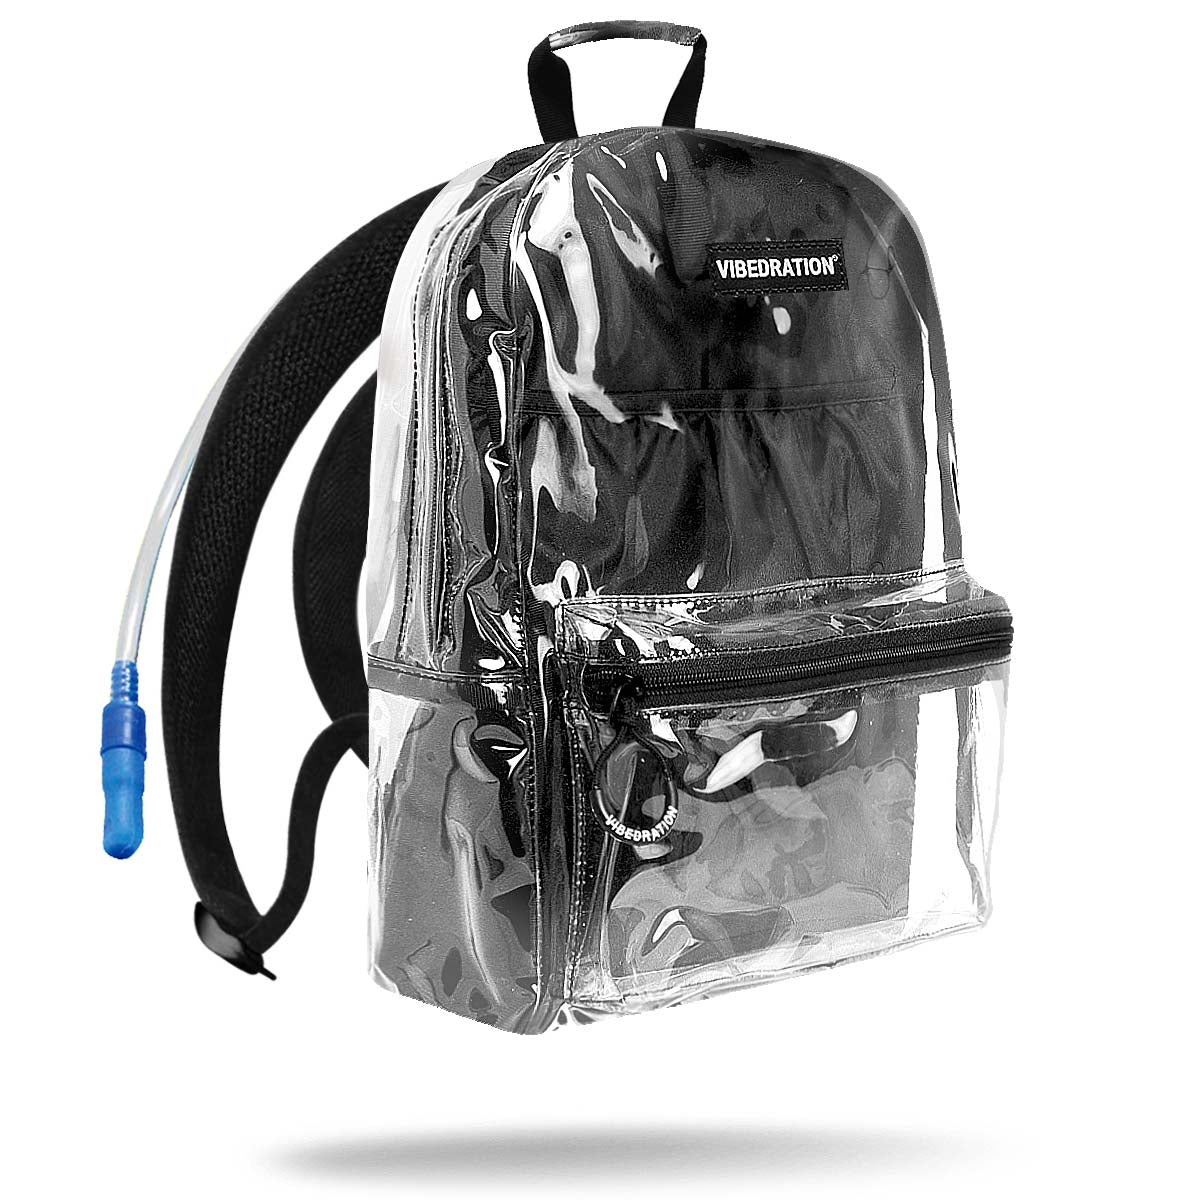 Clear hydration pack